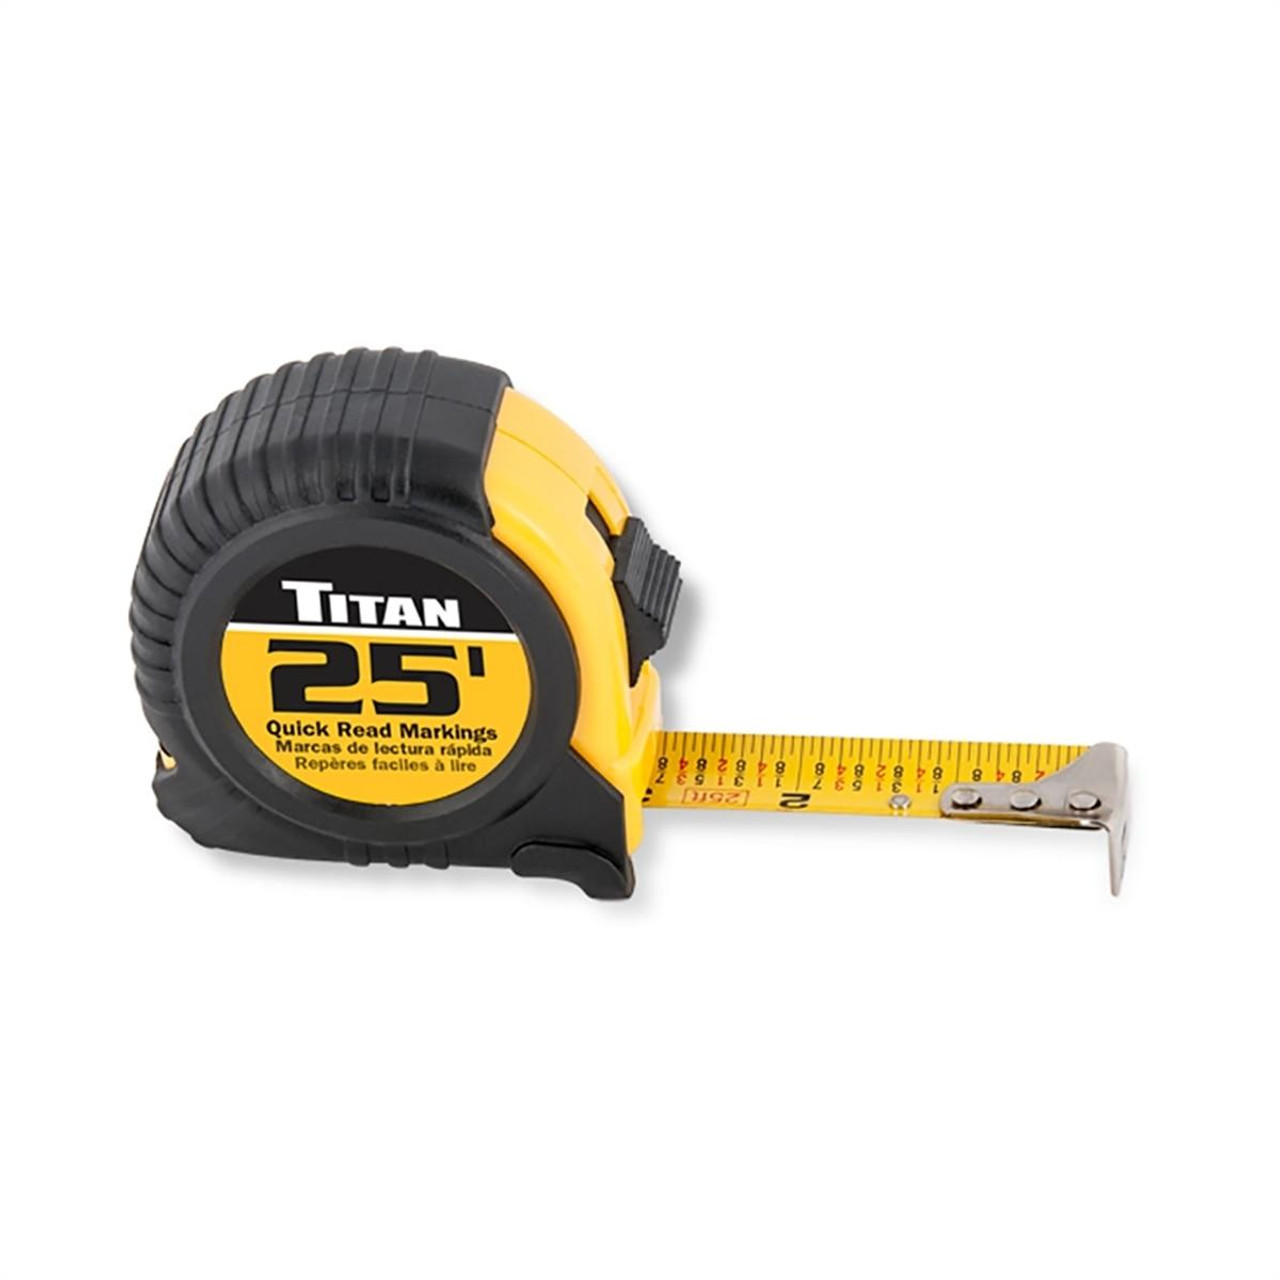 Titan Products 25 Tape Measure FCDV10906